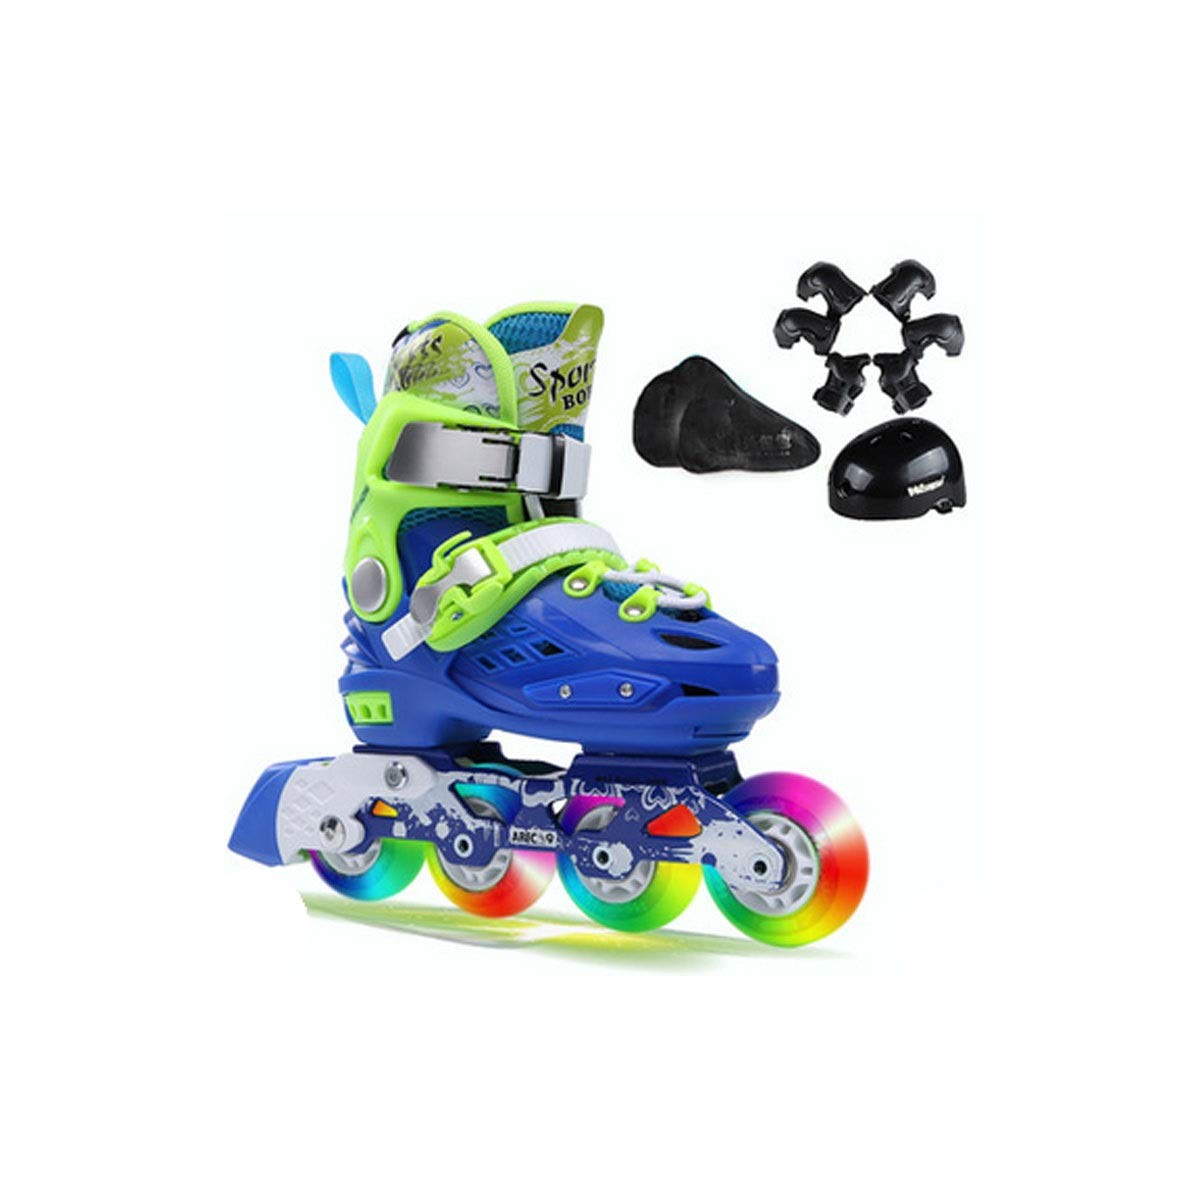 Hengxiang Fitness Inline Skates, Children's Skates, High Elastic Eight Wheels Of Full Flash, High Density Aluminum Alloy Bracket, Full Protective Gear, Inline Skates Make Your Baby's Childhood Richer,